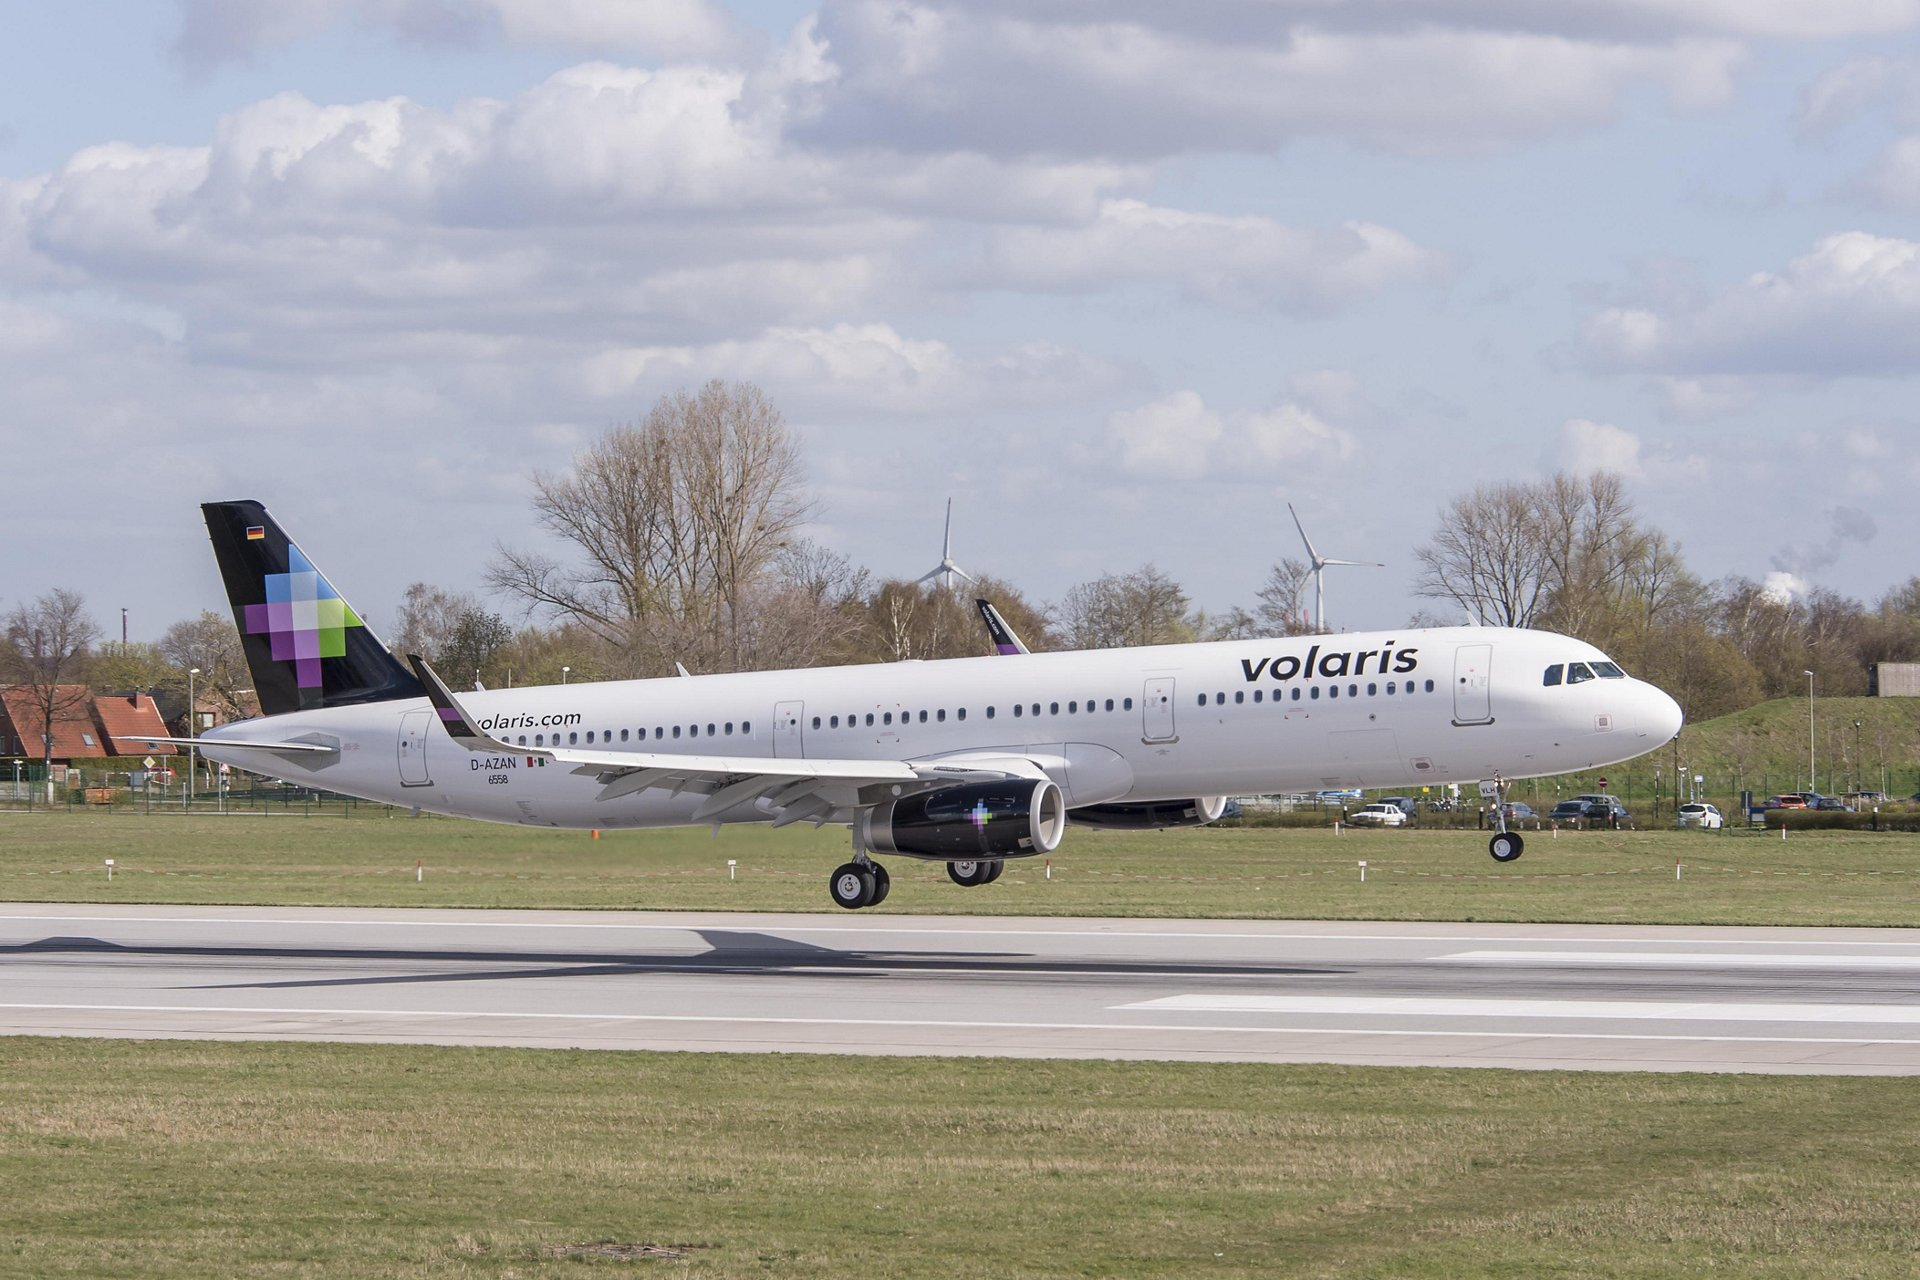 Volaris takes delivery of first two A321s - Commercial